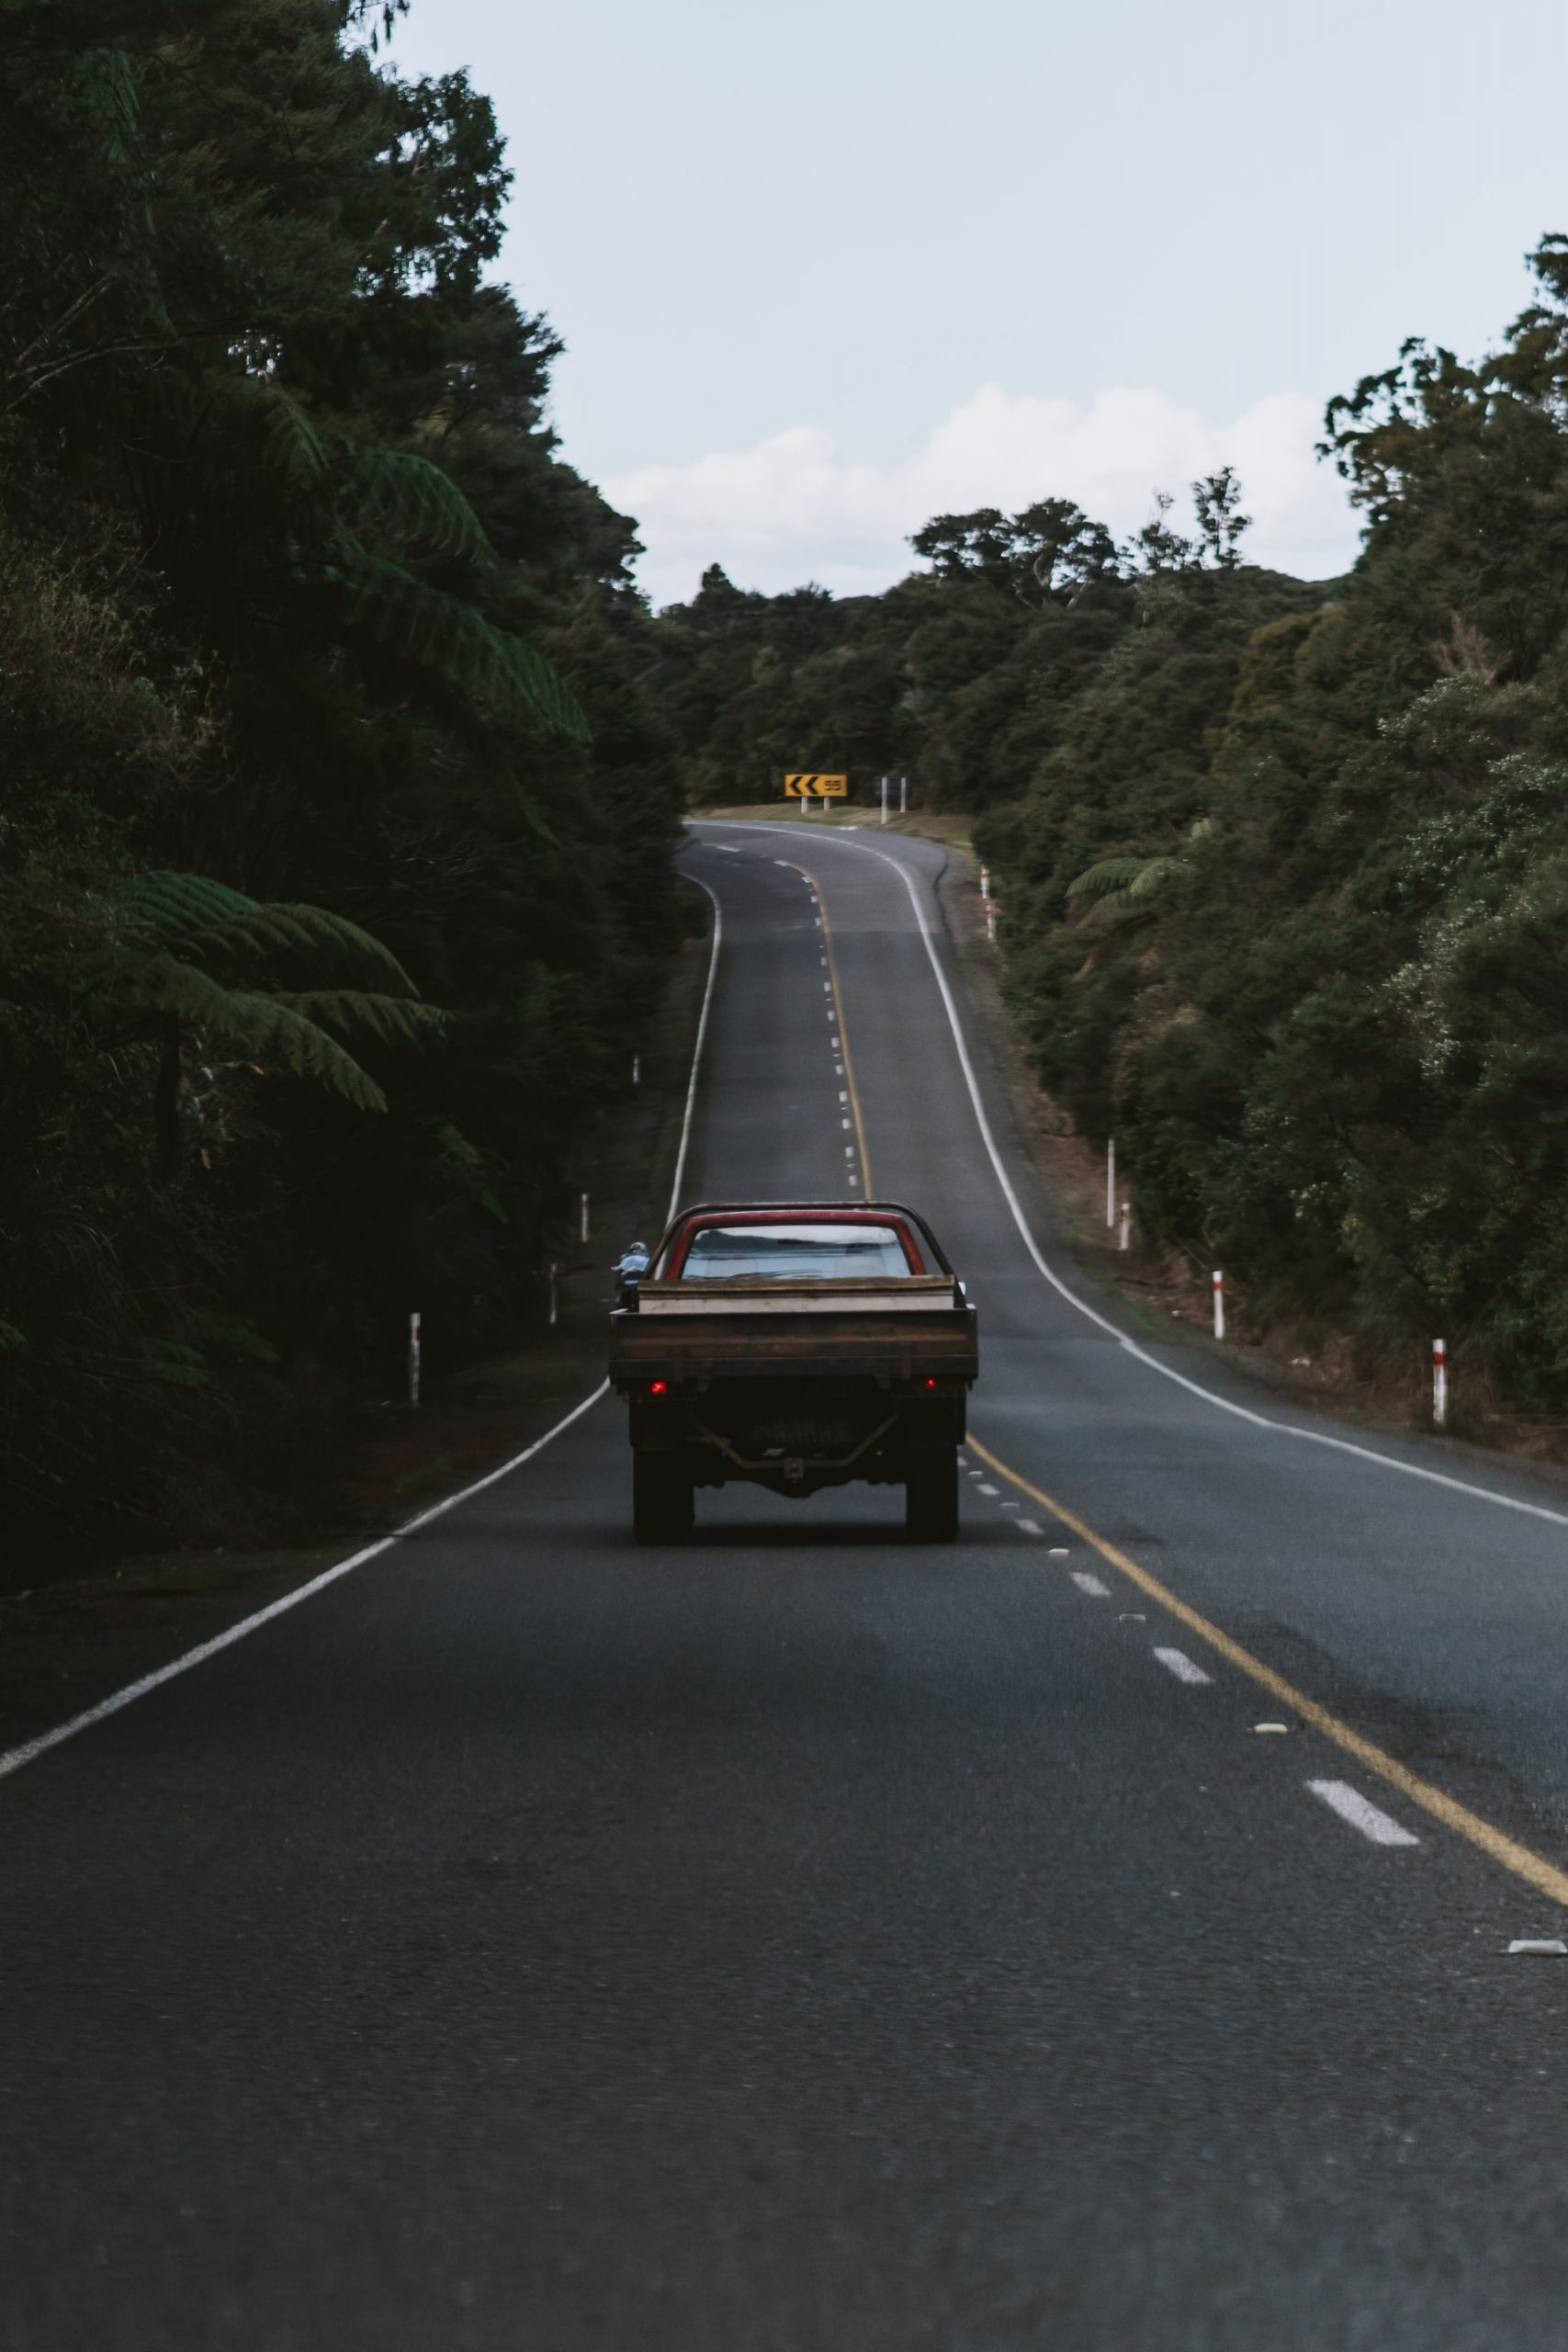 A car on the road